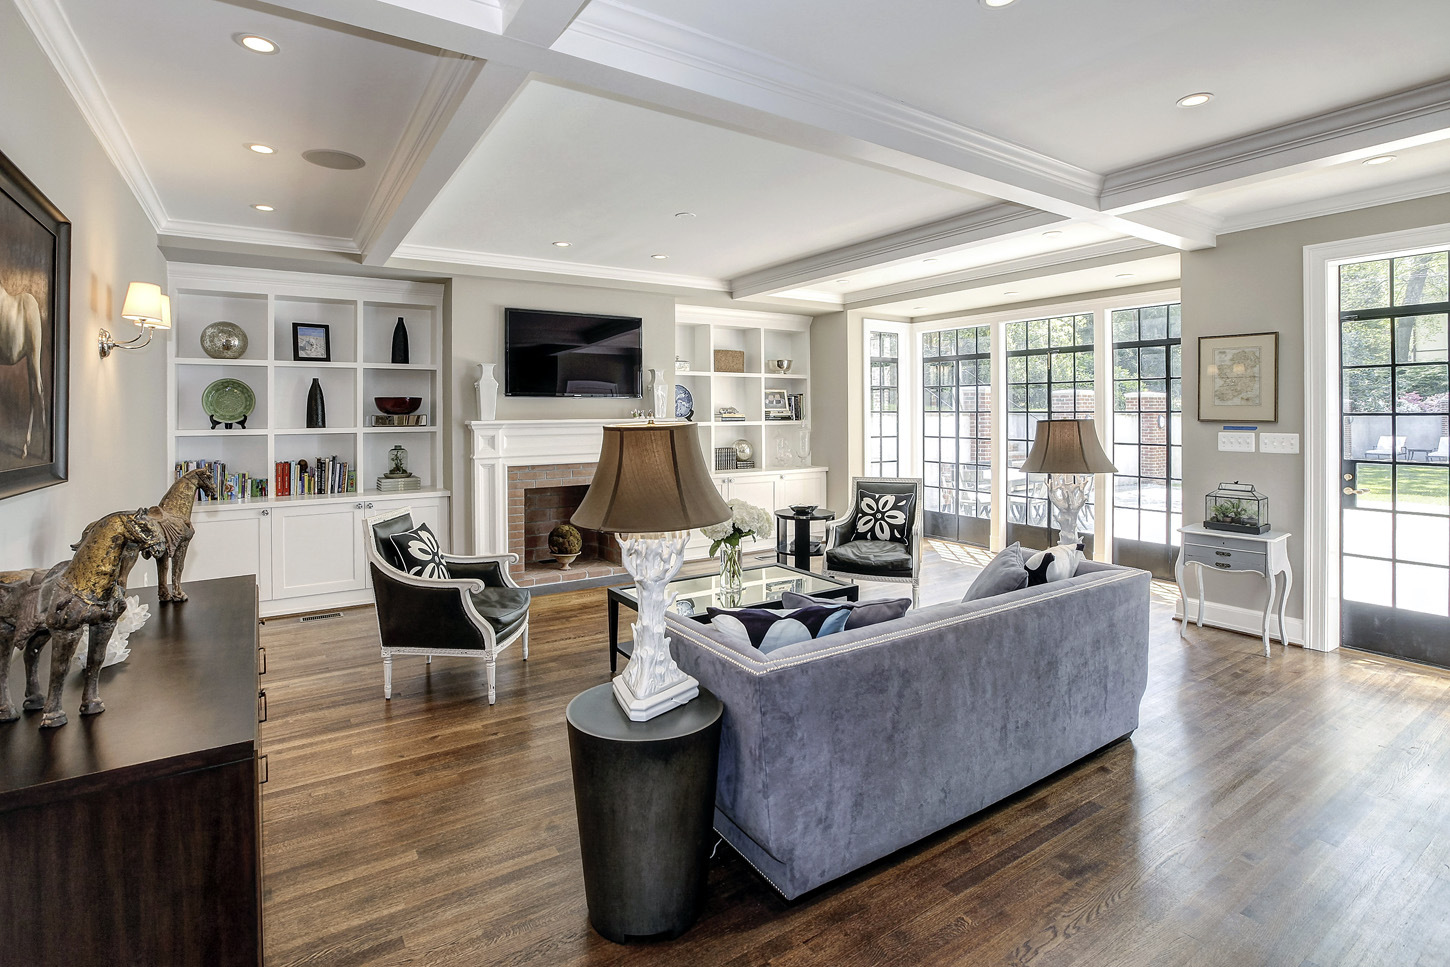 The Obama Family Will Live In a 9 Bedroom D.C. Mansion Credit: HomeVisit.com;